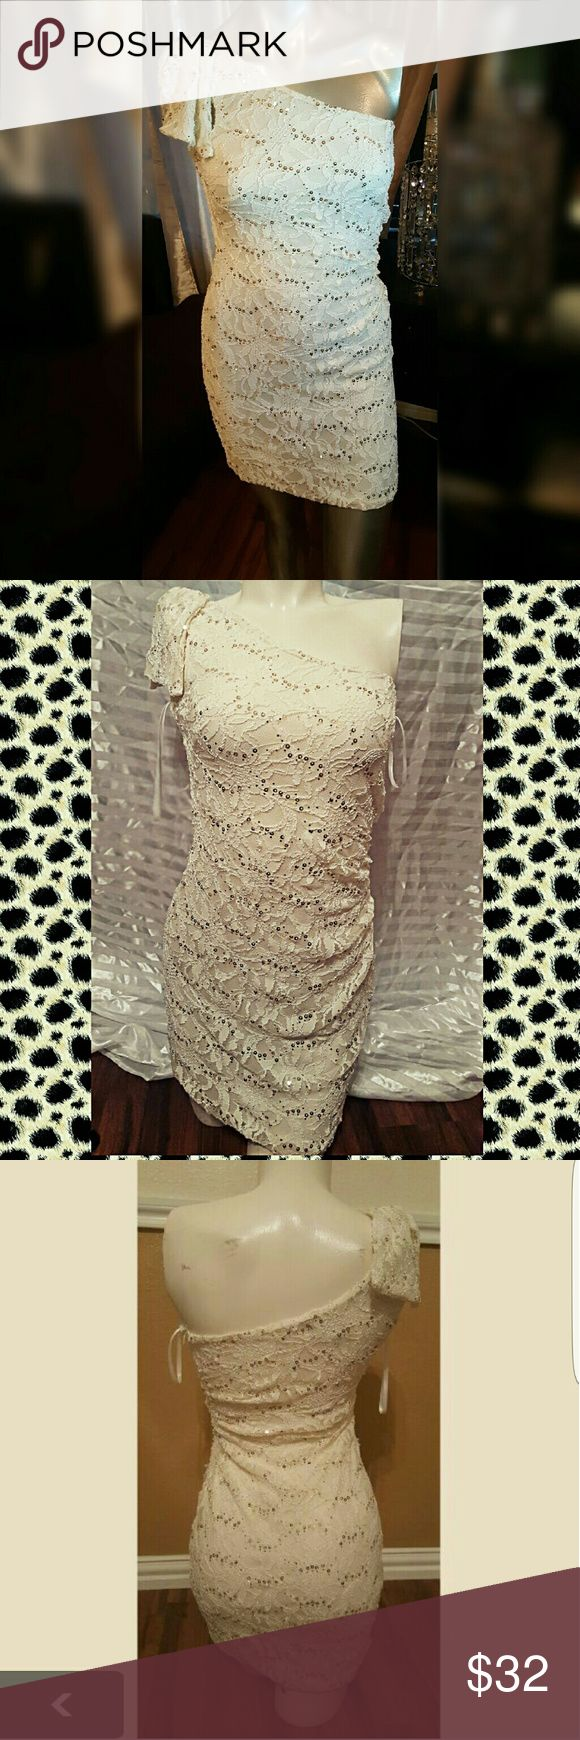 CReam sparkle dress💜 cream sparkle dress size 3 has a slight stretch to it with gold sparkle off white ivory beige dress special occasion dress dinner dress sequence glitter dress City Triangles Dresses Midi